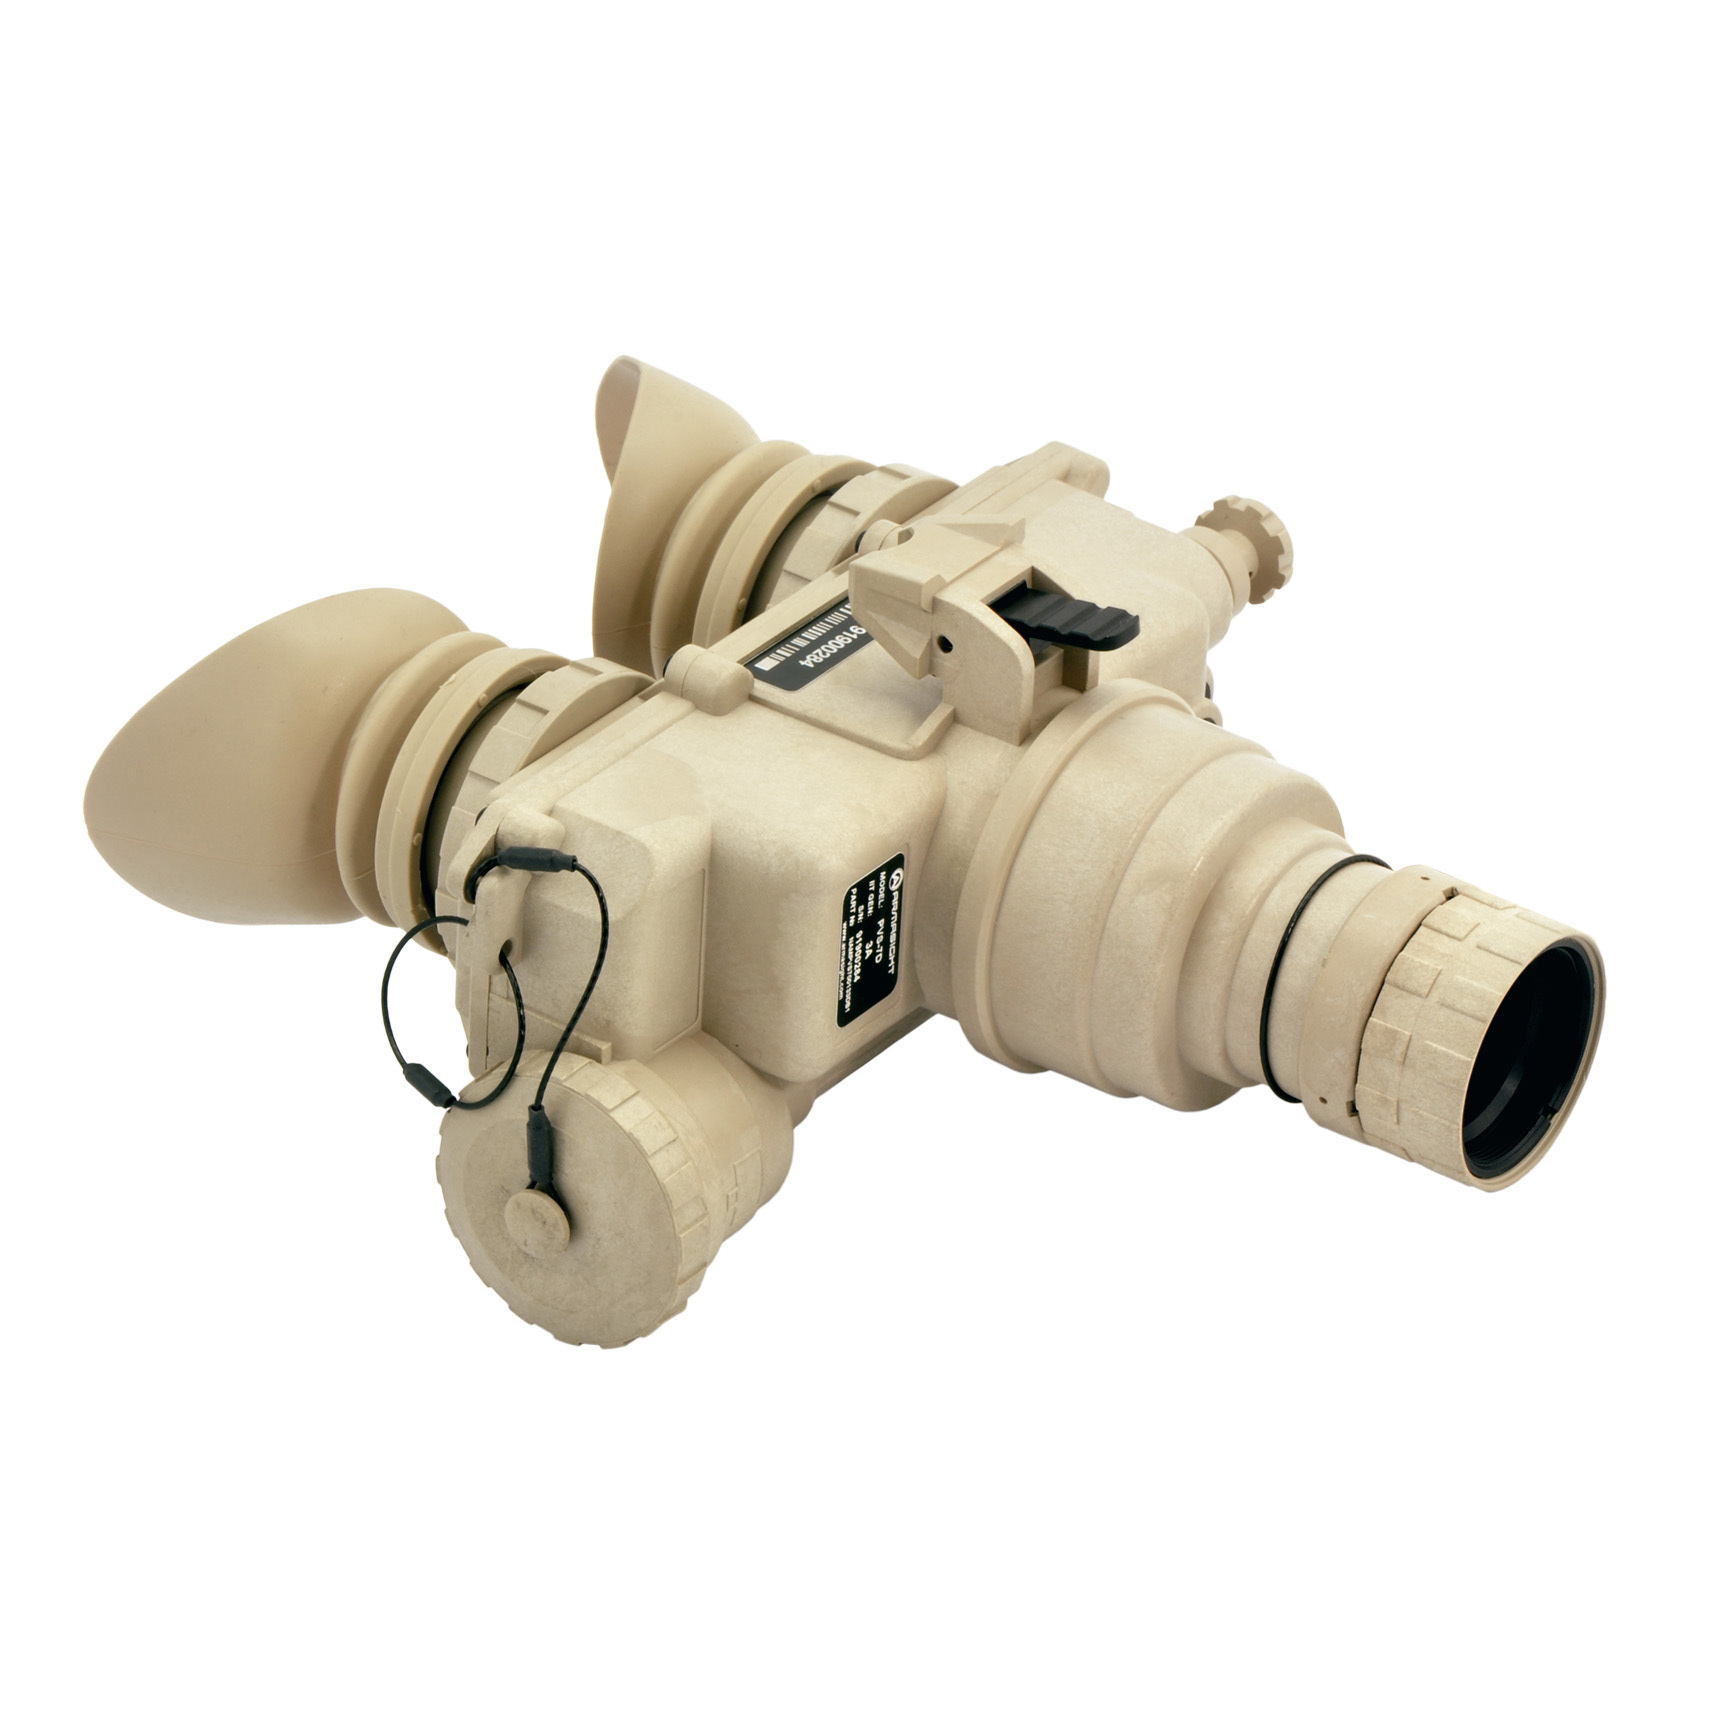 "Armasight PVS-7 Gen 3P Pinnacle Tan Night Vision Goggles. The best that 3rd-Generation imaging has to offer, in a combat-proven chassis. Using the same design and chassis proven in battle by U.S. Armed Forces, the PVS-7 delivers military-grade durability and high-quality imaging under the most demanding conditions. The PVS-7 is equipped with a Gen 3P Pinnacle high-performance image intensifier tube for amazing clarity and contrast that represents the best that Gen 3 optics have to offer. The Gen 3P Pinnacle IIT utilizes a gated power source that eliminates the ""halo effect,"" offering better performance in high-light or light-polluted areas like urban centers.It's 100% water and weather-proof, and features automatic brightness control which automatically adjusts the brightness of the image tube to achieve the highest quality resolution under varying light conditions. A built-in IR illuminator provides ""invisible"" artificial light to illuminate your target when natural light is scarce.With all the accessories you need to get started -- like a head mount assembly for hands-free use, demist shield, sacrificial window and more -- it's the ultimate mission-ready Goggle for the modern professional.Features:Gen 3P Pinnacle image intensifier tube - the best of 3rd Generation optical quality Gated power source eliminates the ""halo effect,"" offering better performance in high-light or light-polluted areas like urban centers. Manual variable gain control lets you select image brightness level to match light conditions 100% waterproof and weatherproof Head or helmet-mountable for hands-free usage (head mount assembly included) Built-in infrared illuminator and flood lens to provide ""invisible"" light when natural light is scarce Includes head mount assembly, demist shield, brow pads, lens cap, lens tissue, lanyard, sacrificial window, shoulder strap, batteries, and carry case. Specs:IIT: Gen 3P Pinnacle high-performance Resolution: 64-72 lp / mm Magnification: 1X Lens syst - $4,184.99"